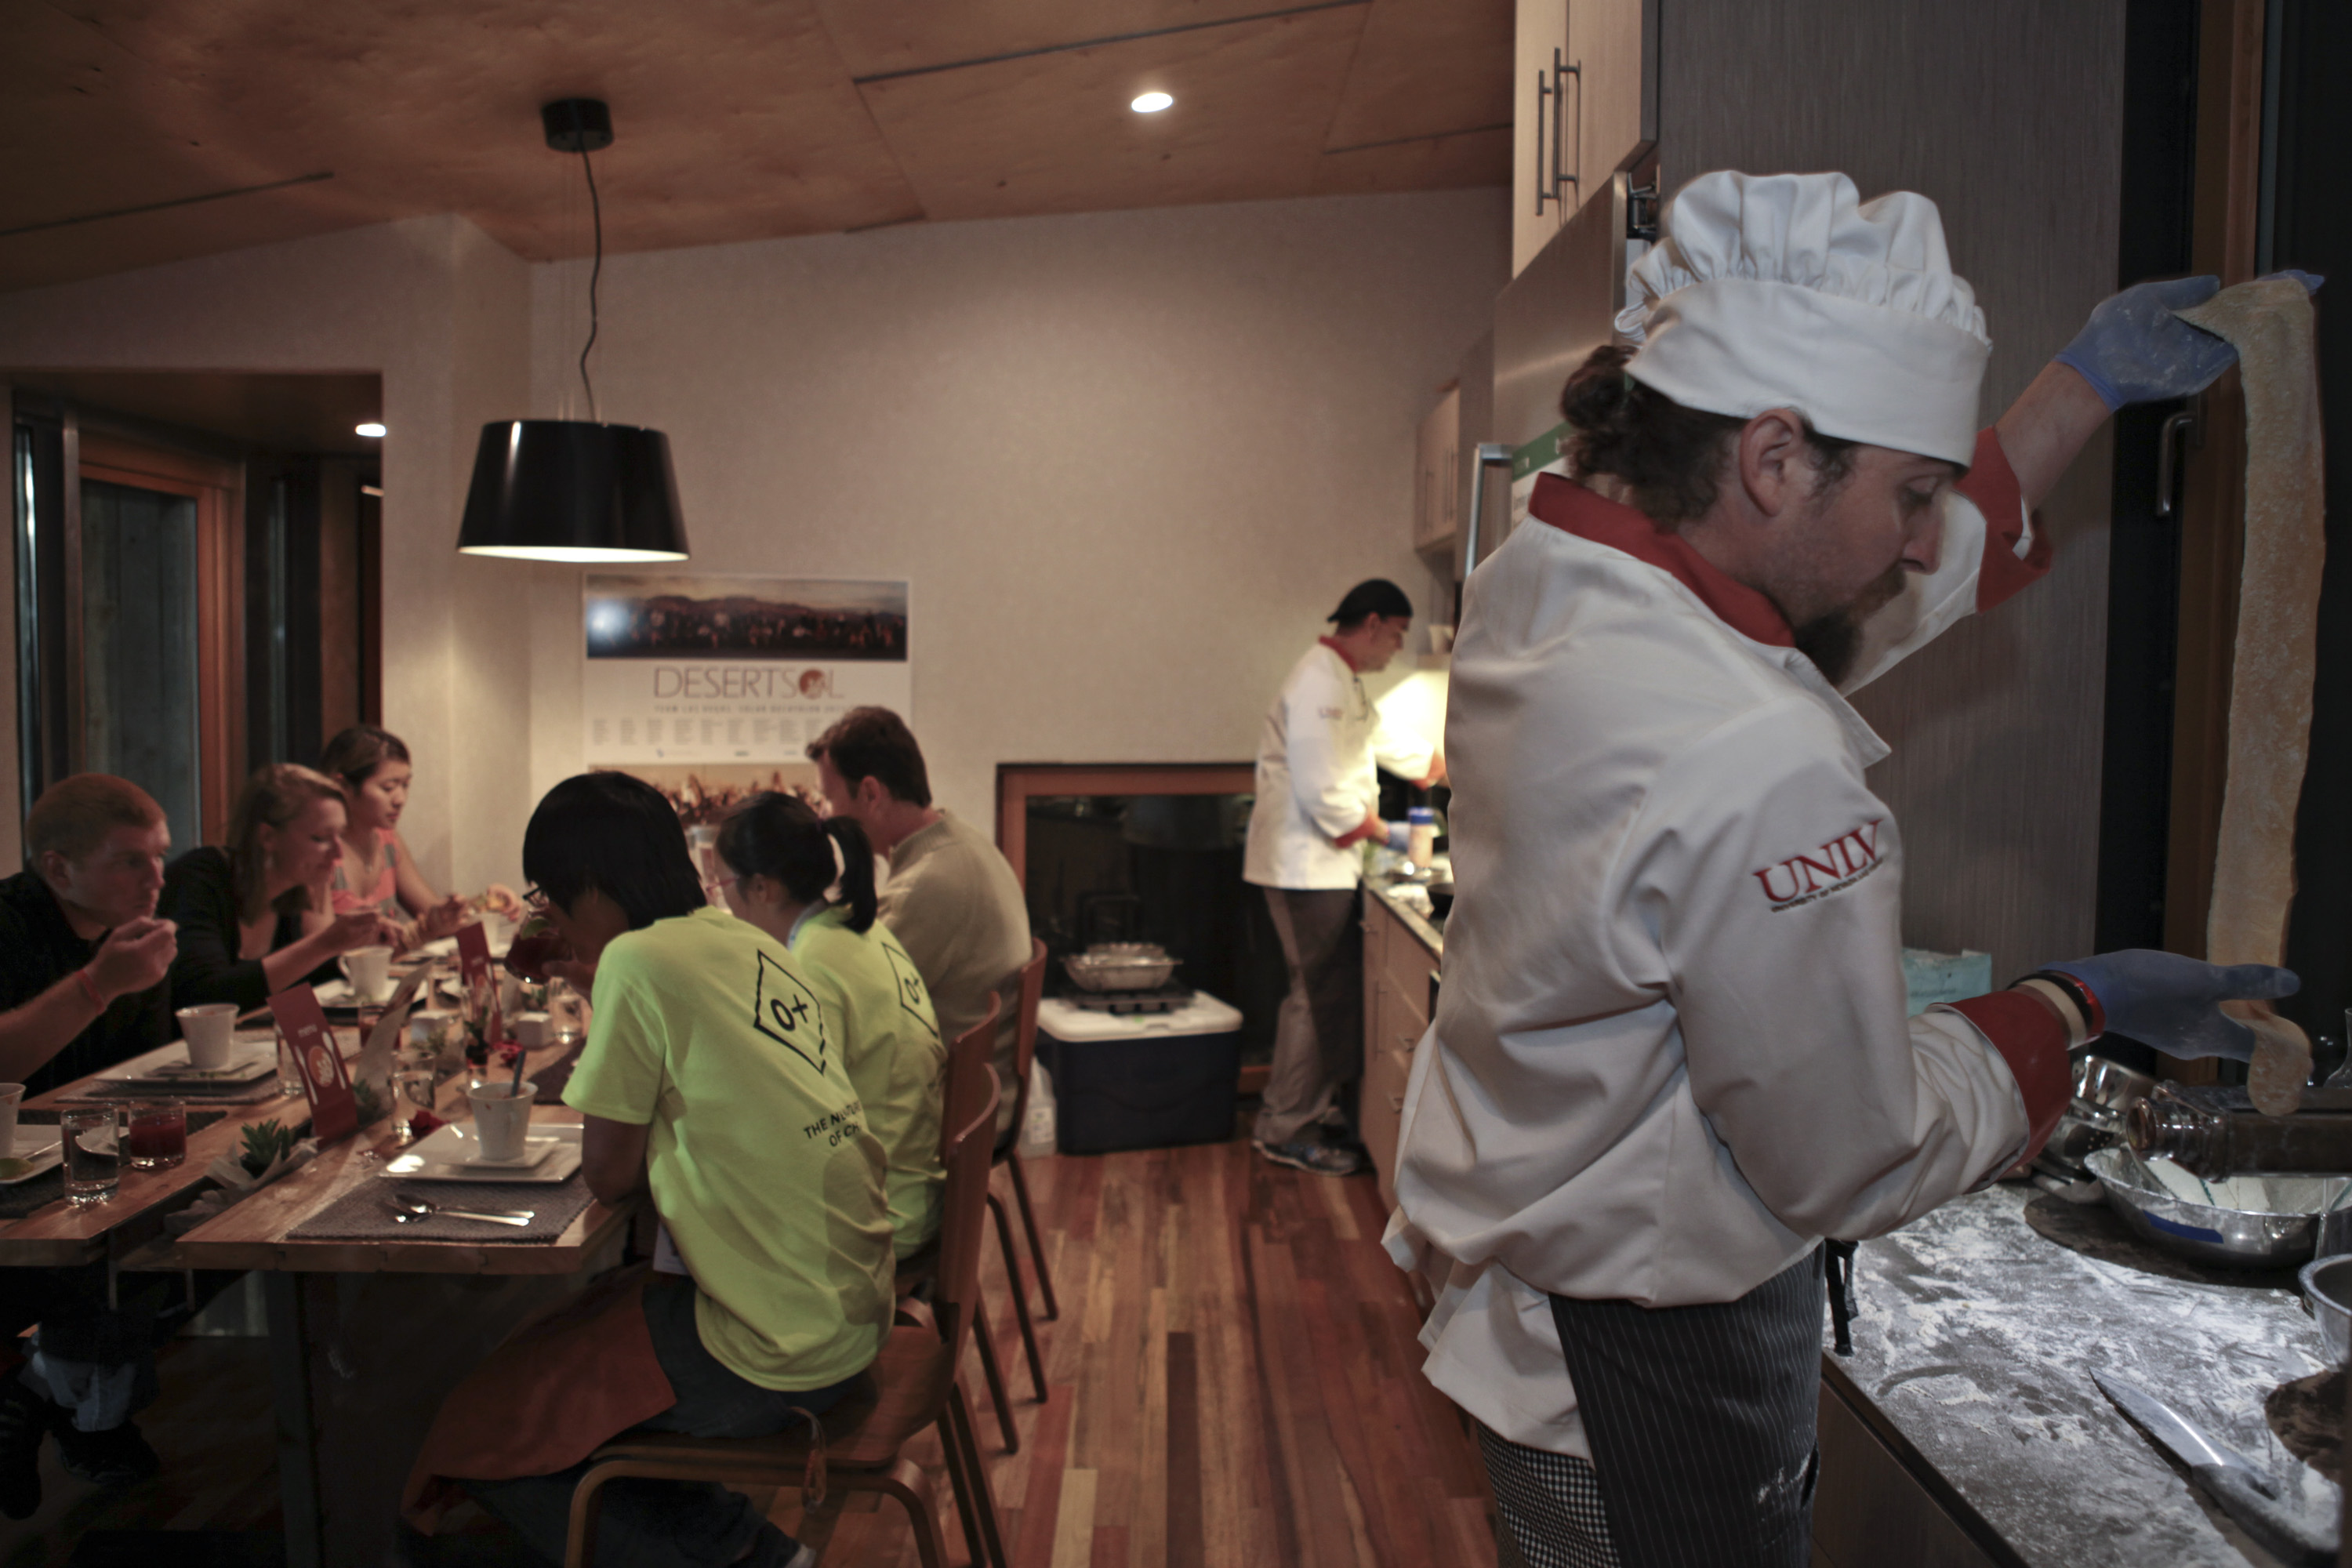 Photo of a man wearing a chef's hat cooking at a stove, with people sitting at a table in the background.